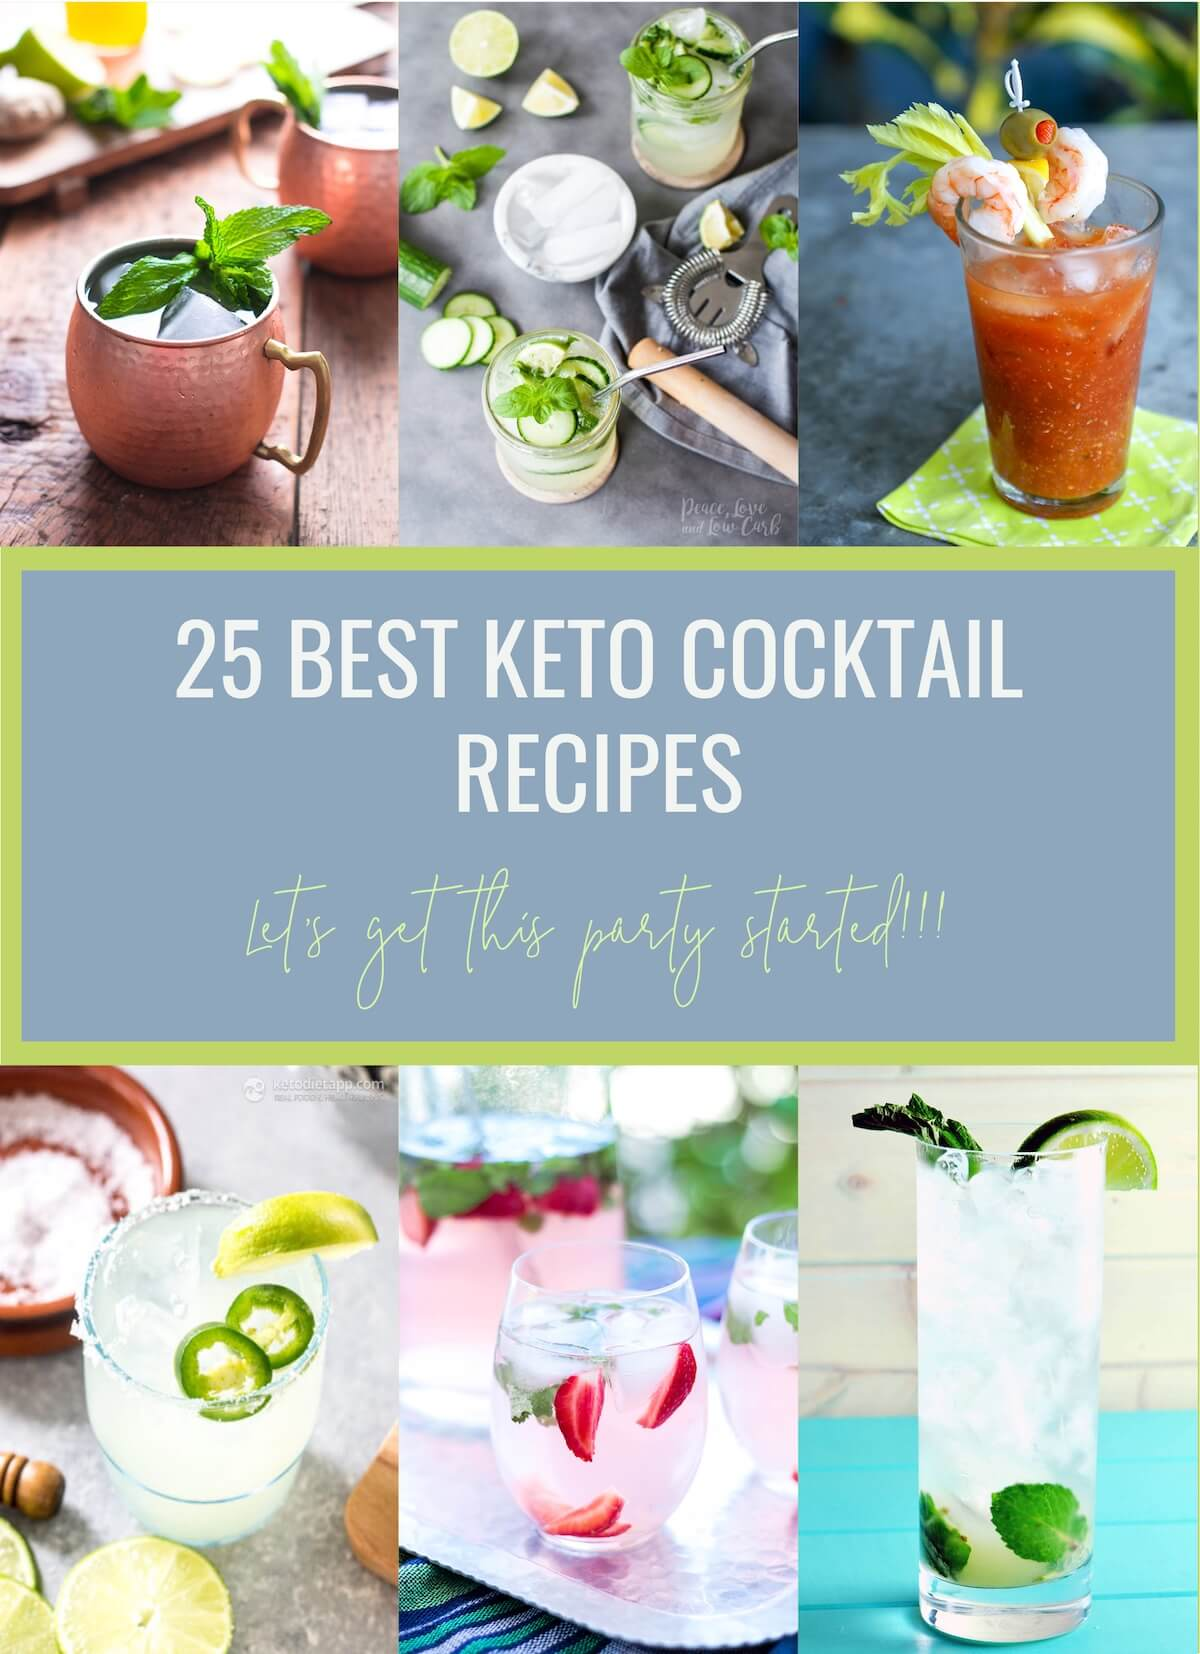 25 Best Ideas About Make Up Tutorial On Pinterest: 25 Best Keto Cocktail Recipes - Low Carb